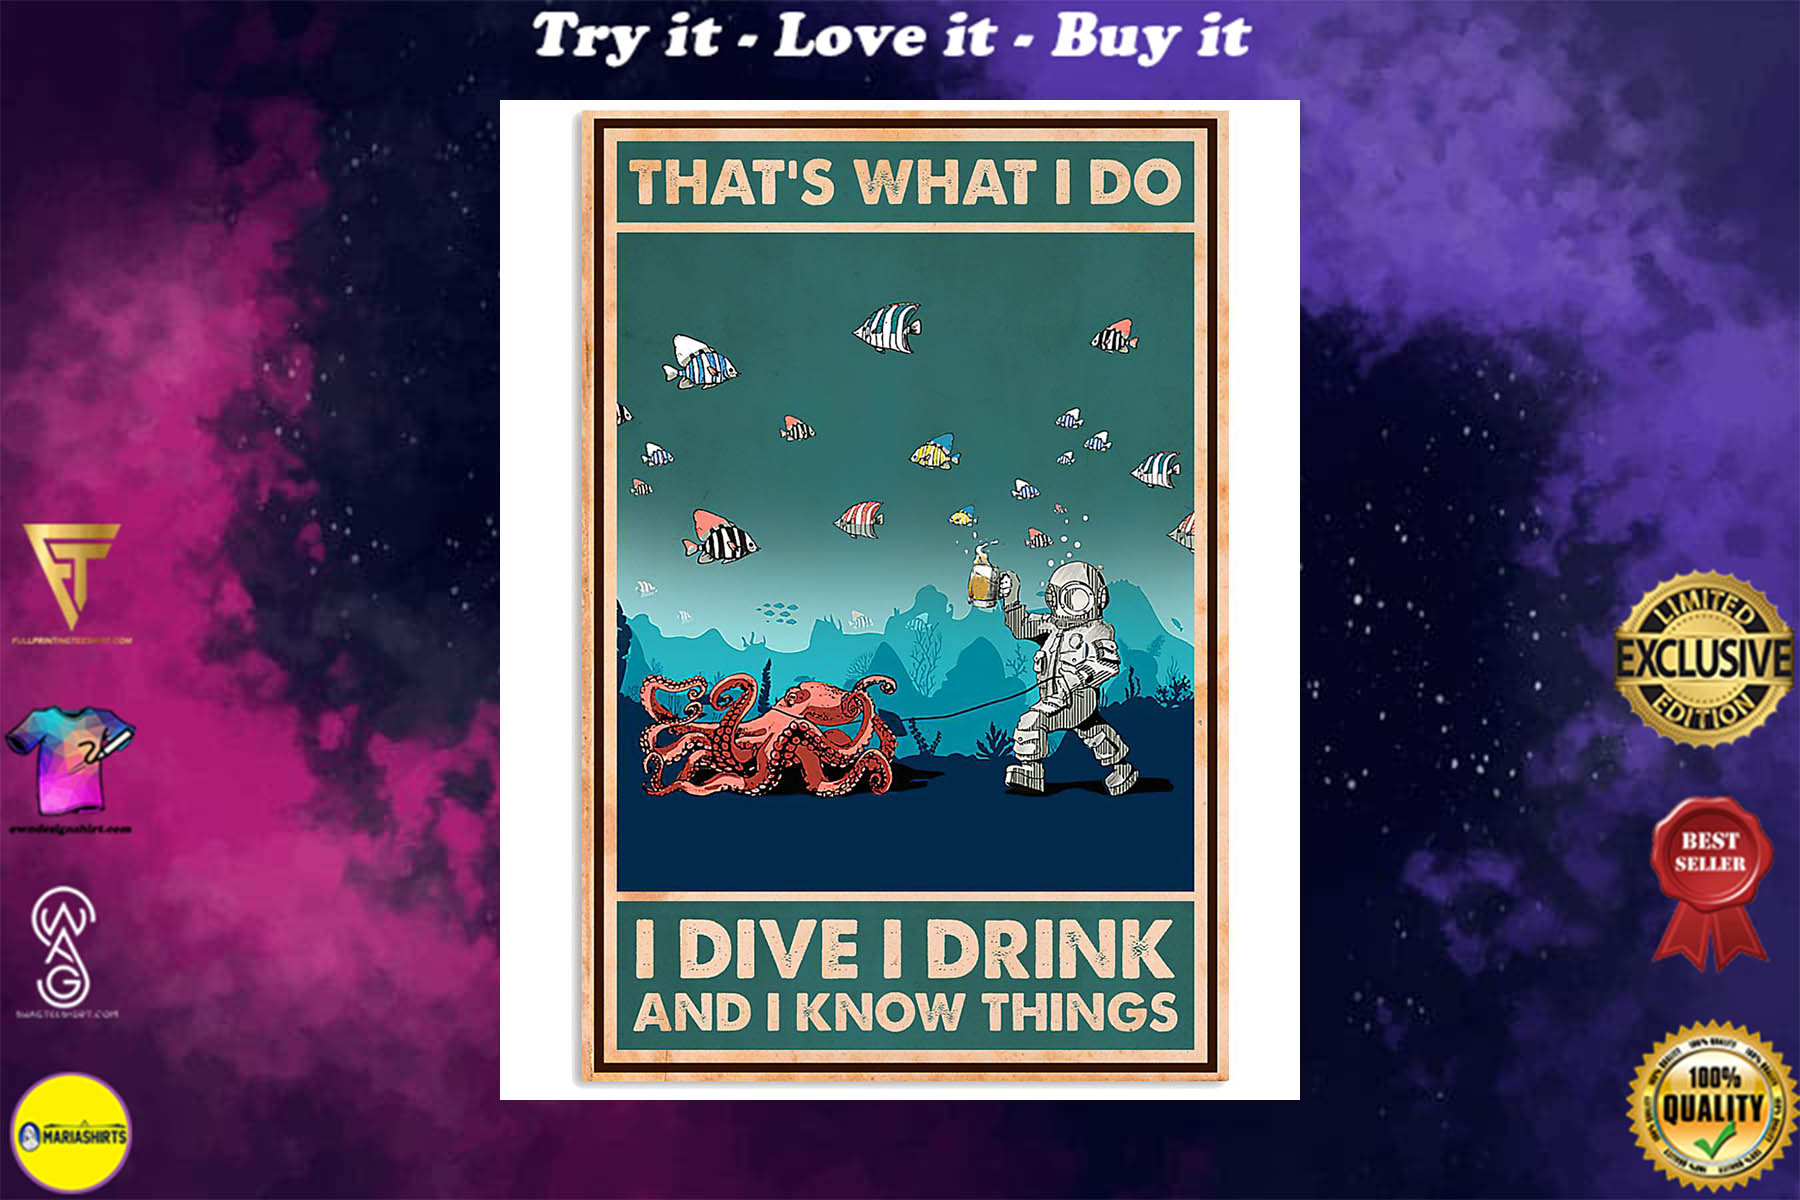 thats what i do i dive i drink and i know things retro poster